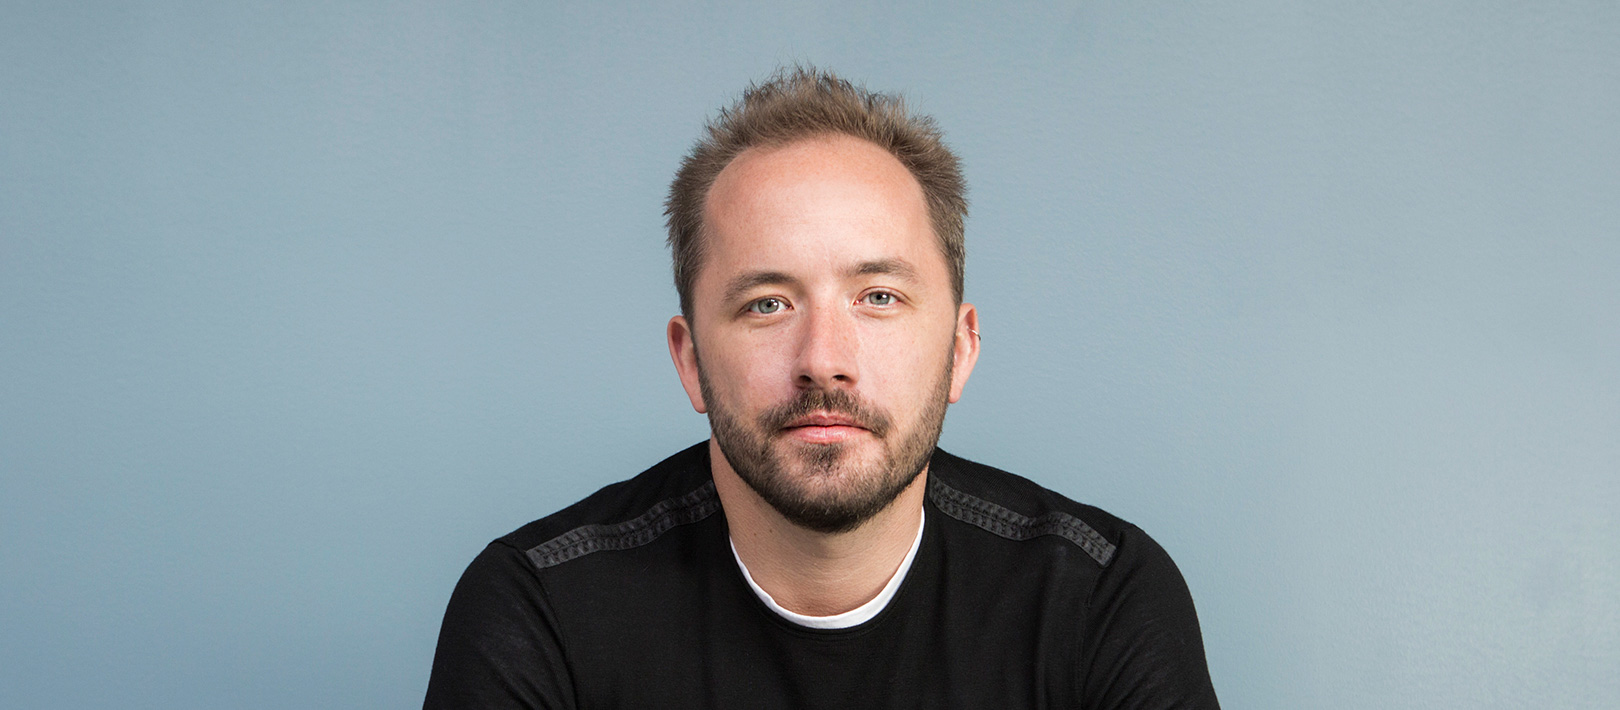 dropbox ceo drew houston in 2016